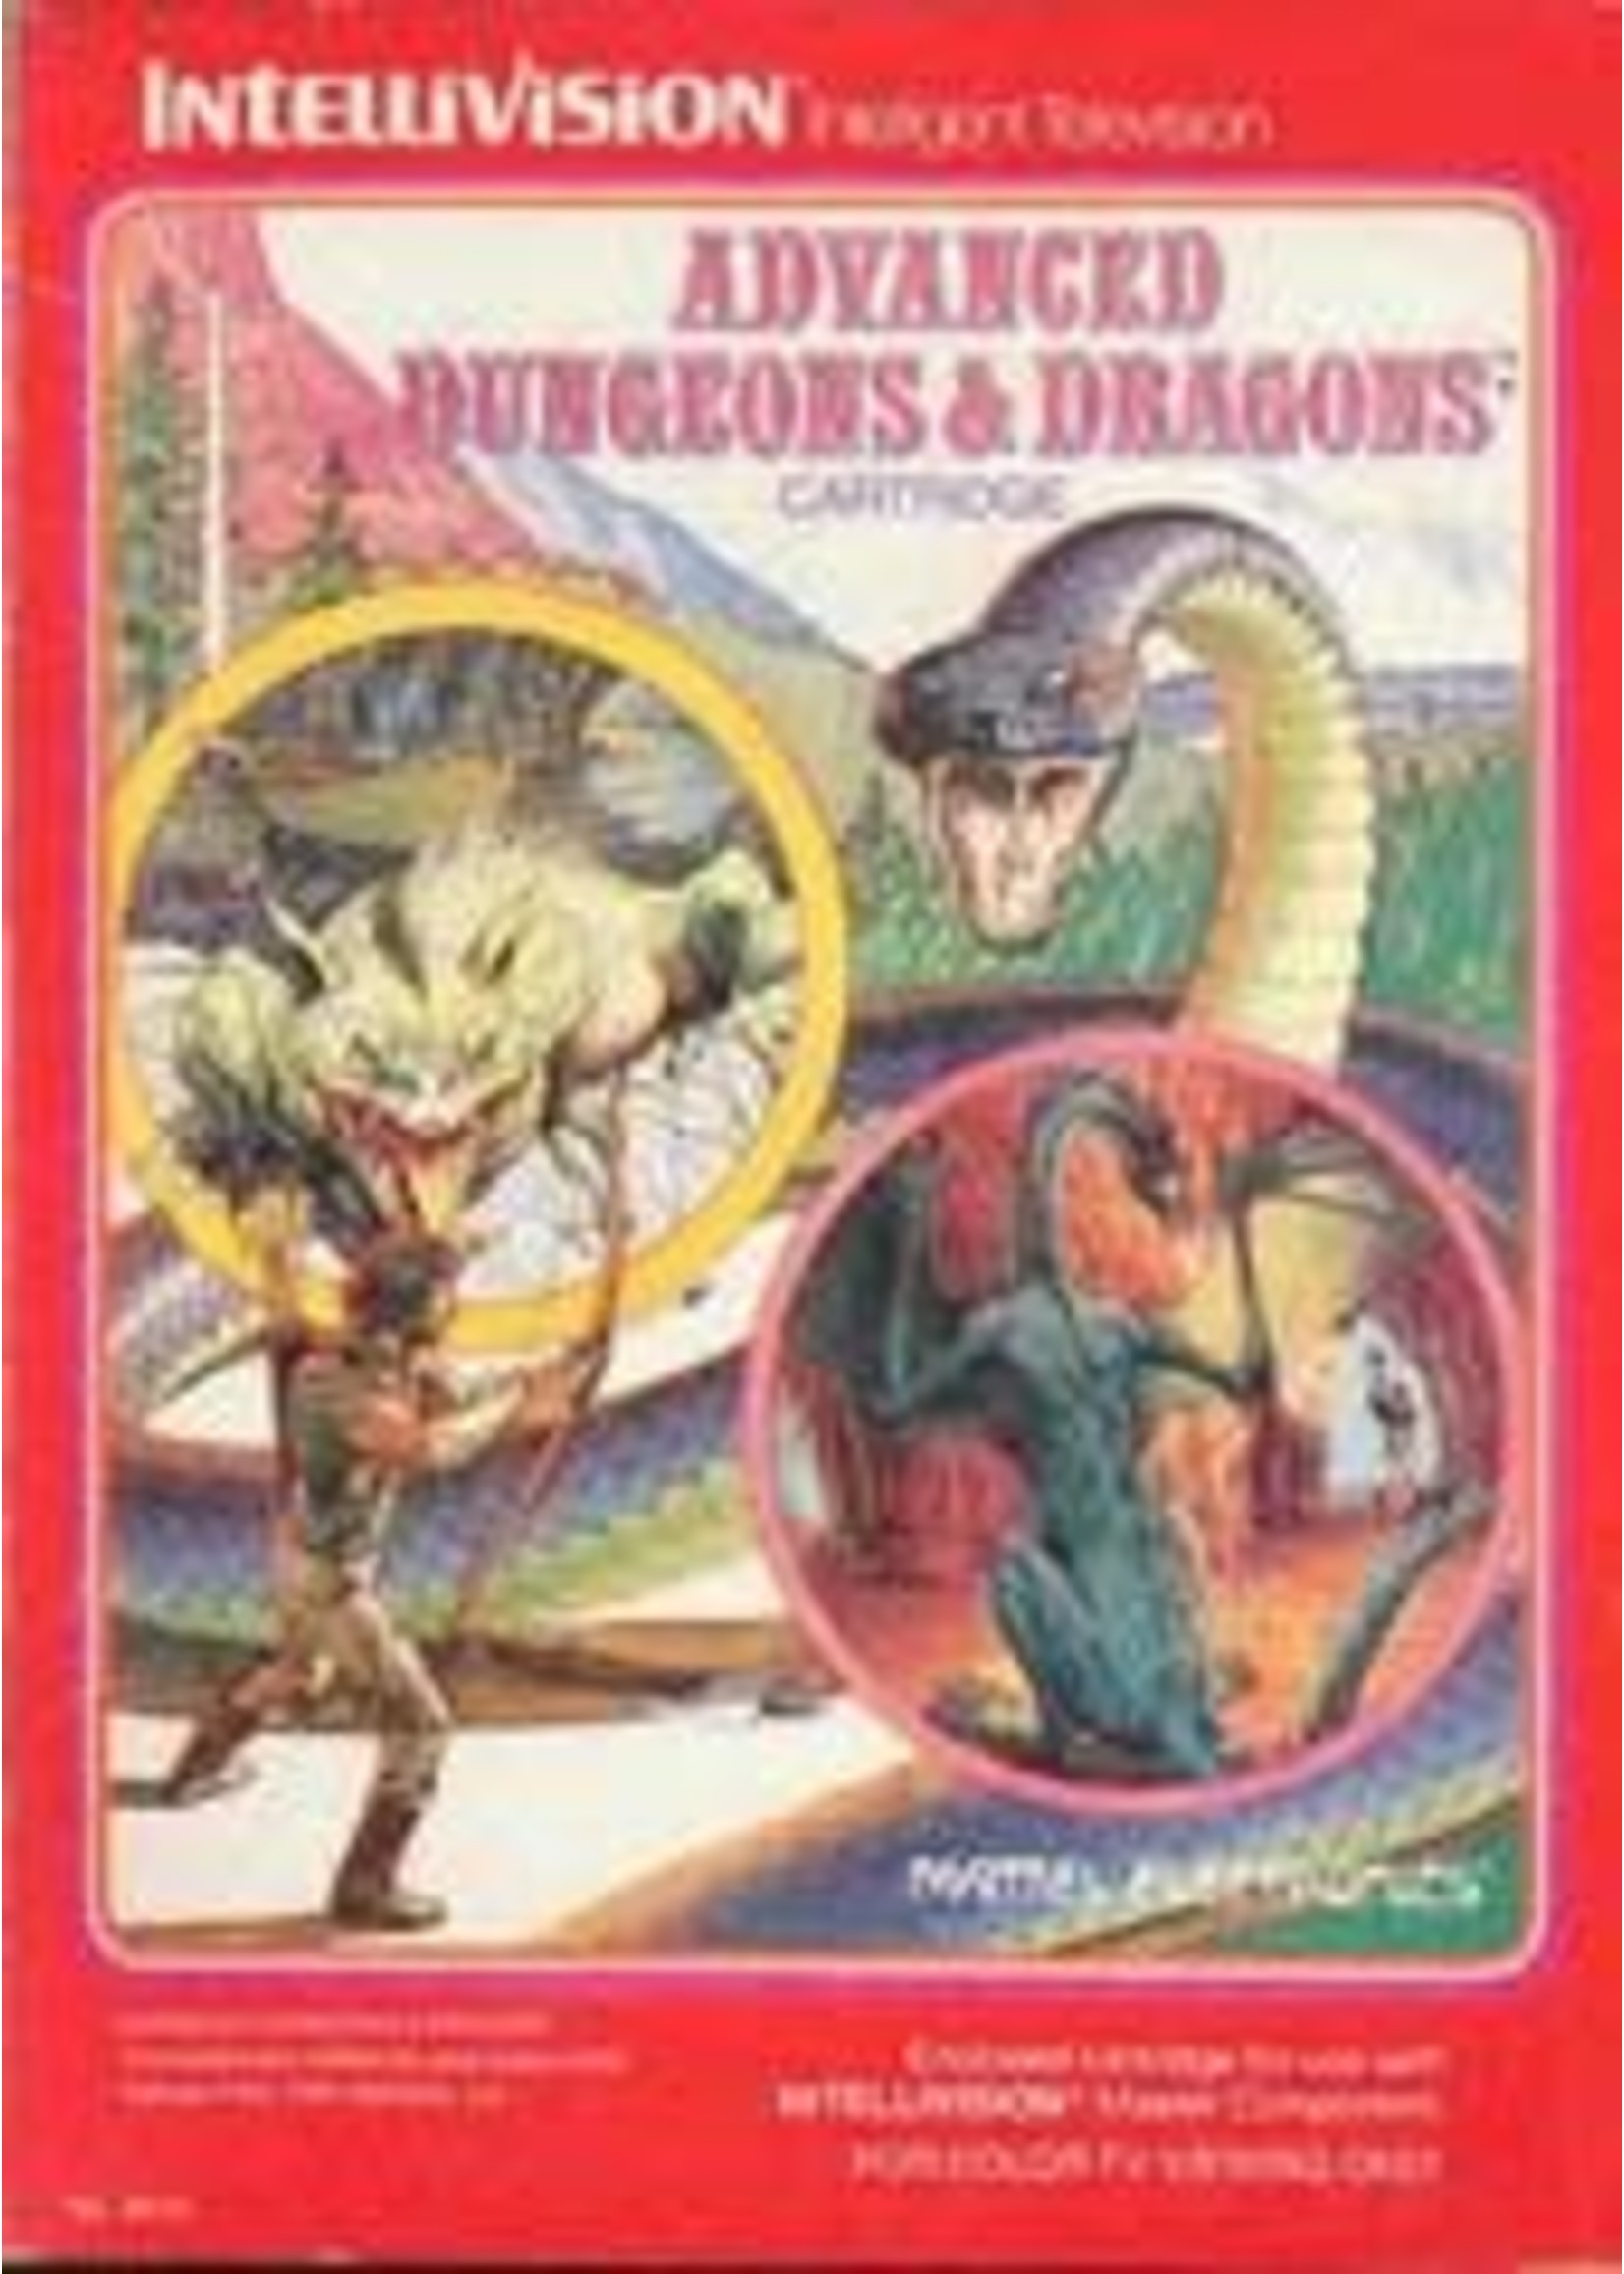 Advanced Dungeons & Dragons Intellivision